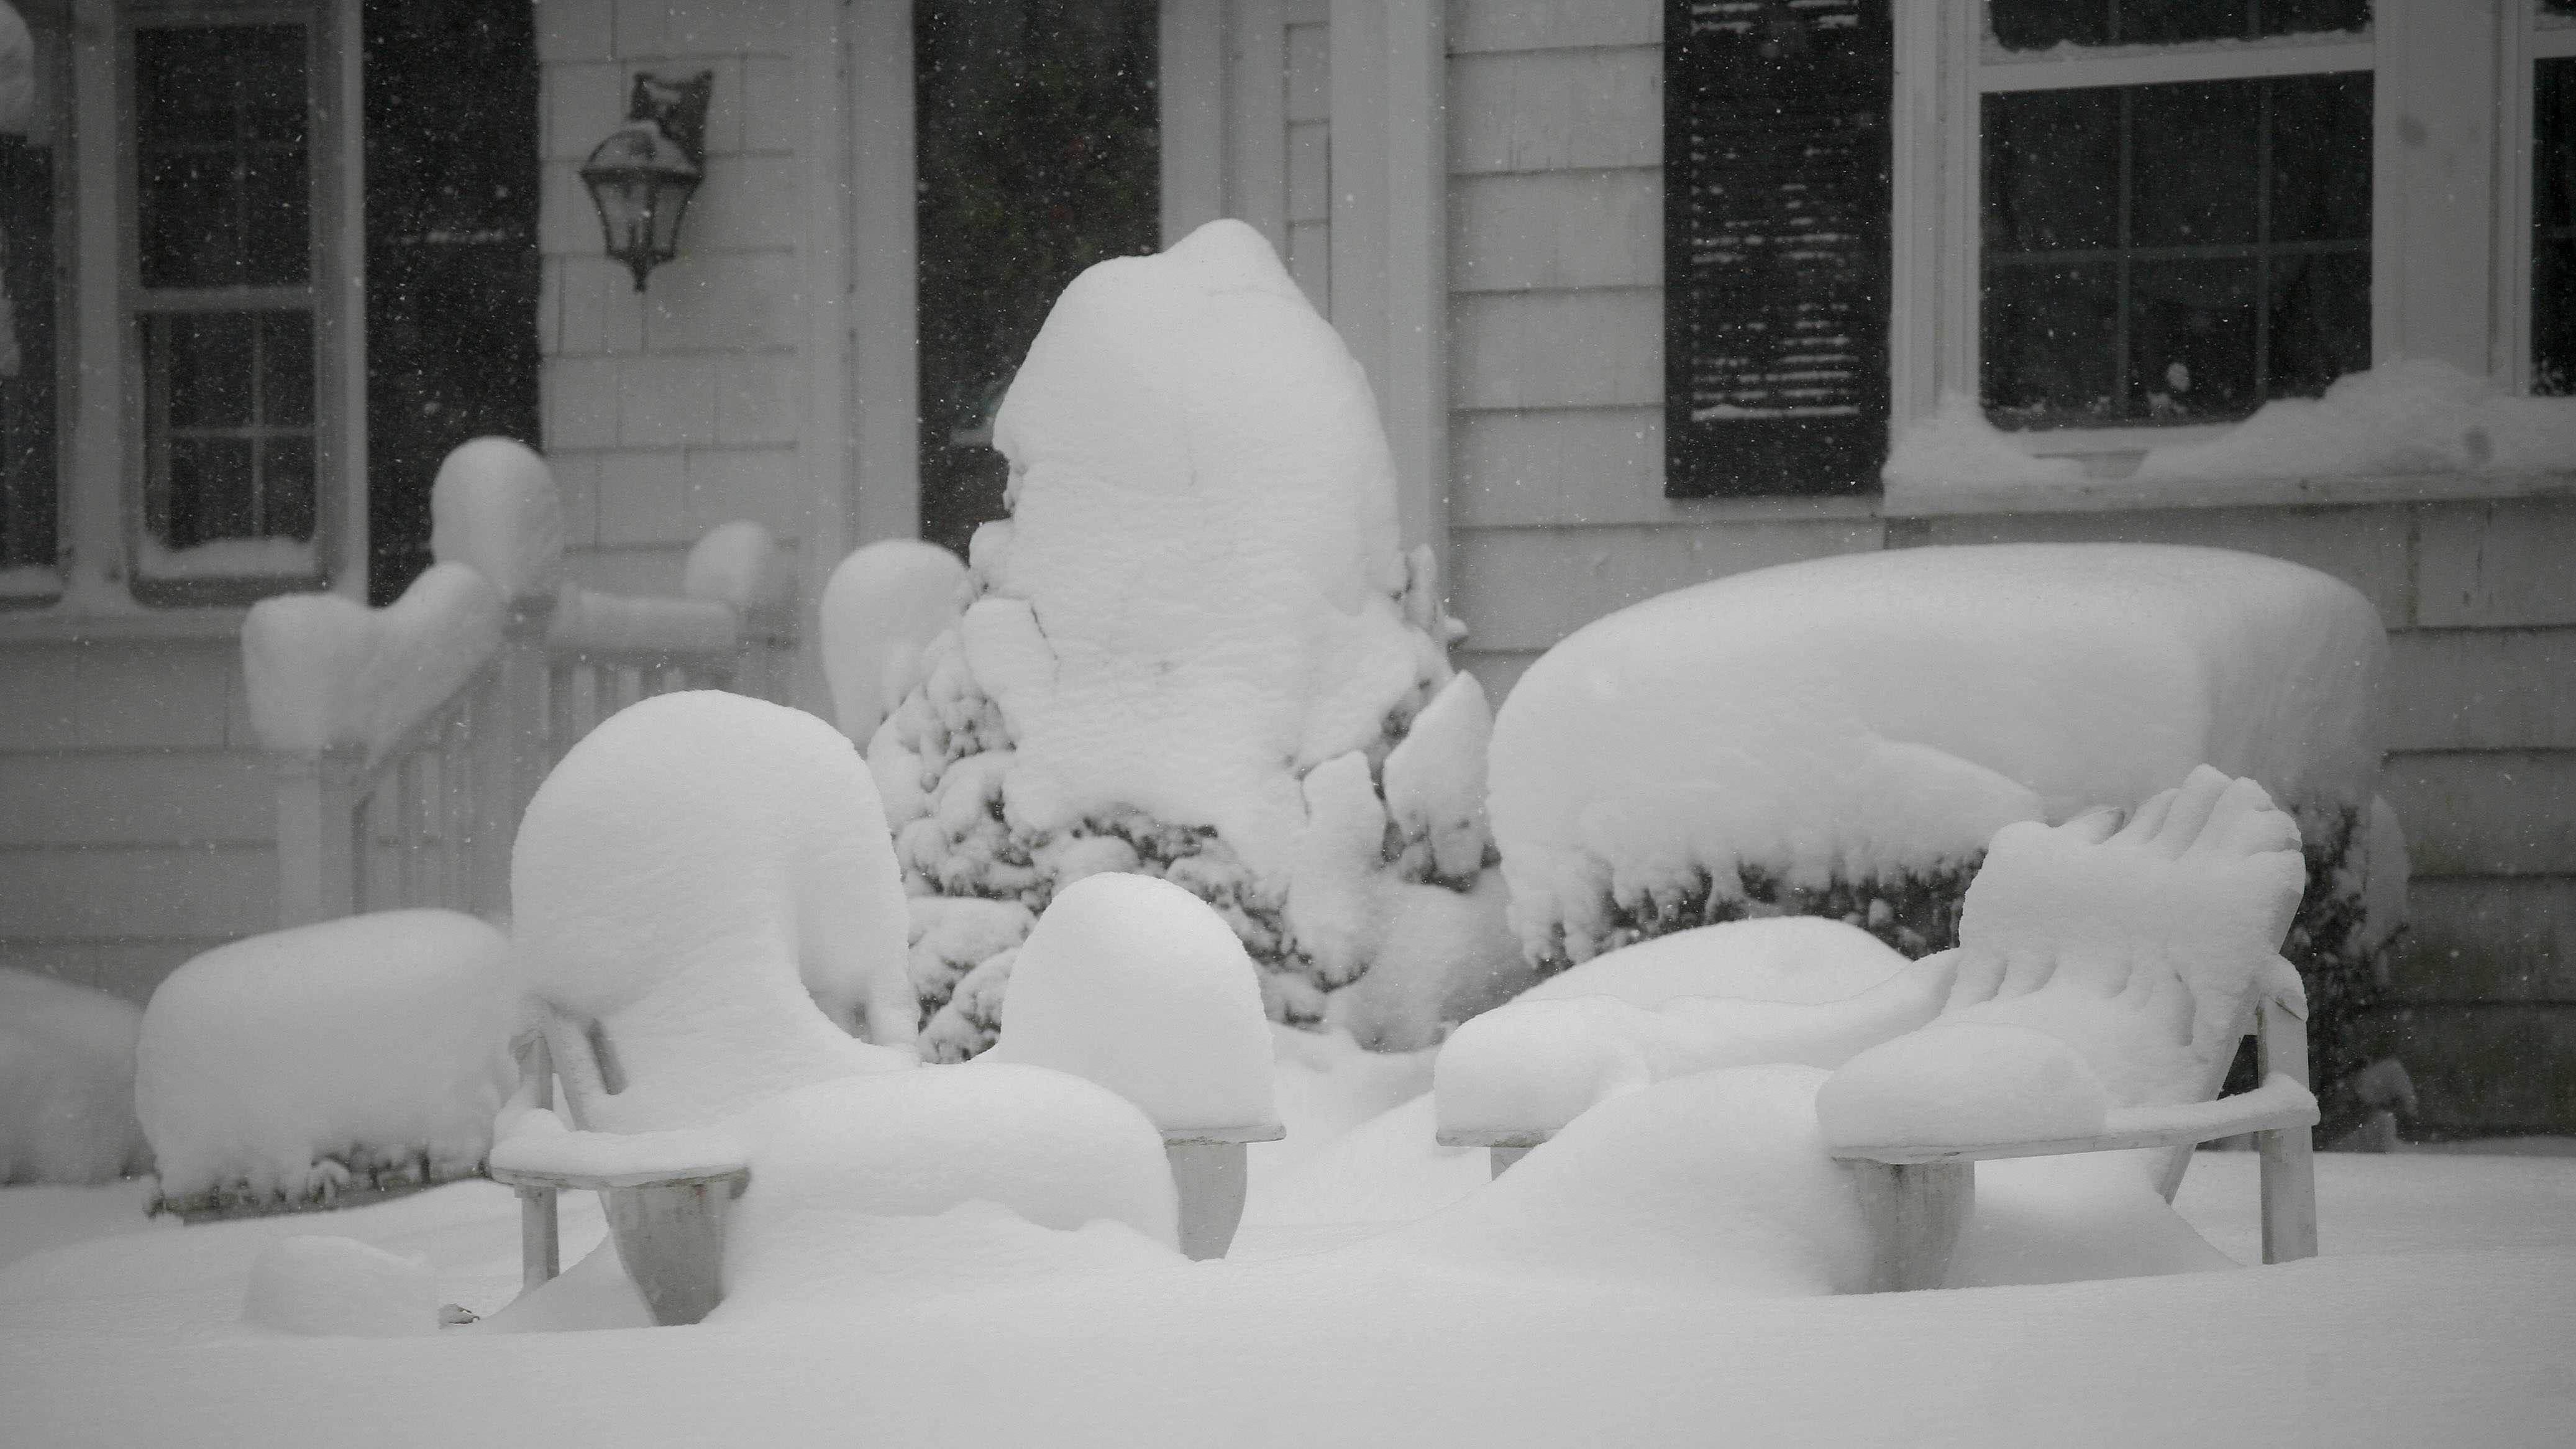 Nearly 20 inches of snow covers spots on the South Shore, Wednesday Jan. 22, 2014. Wooden lawn furniture covered in light fluffy snow over a foot deep.